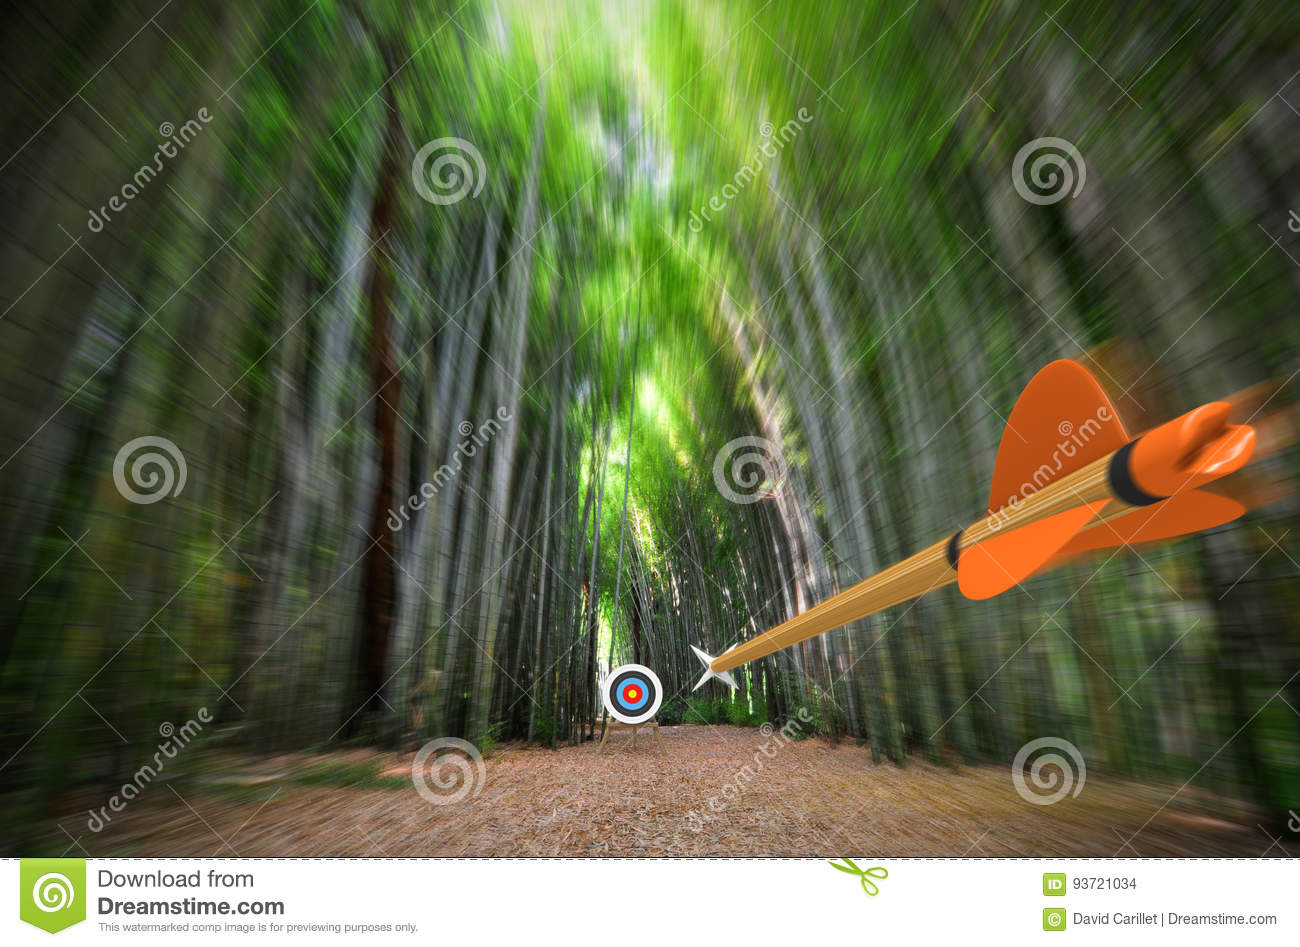 La méditation sur son propre esprit. Le niveau supérieur du degré 1 High-speed-arrow-flying-blurred-bamboo-forest-archery-target-focus-part-photo-part-d-rendering-shooting-concept-93721034